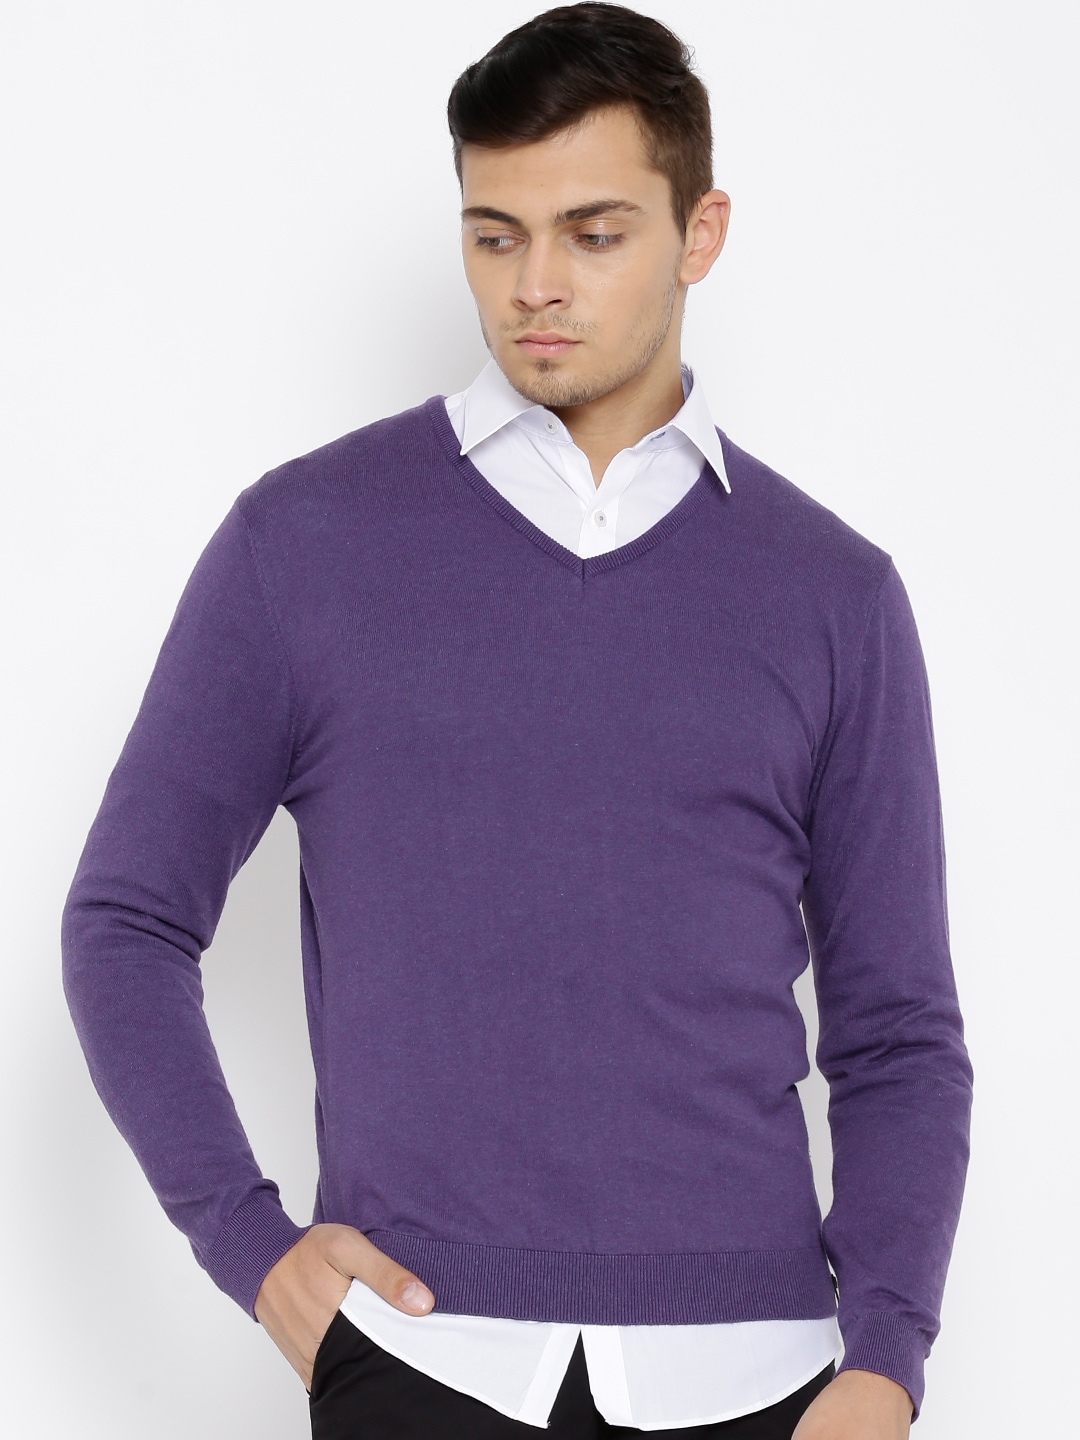 Buy Peter England Blue Sweater - Sweaters for Men | Myntra